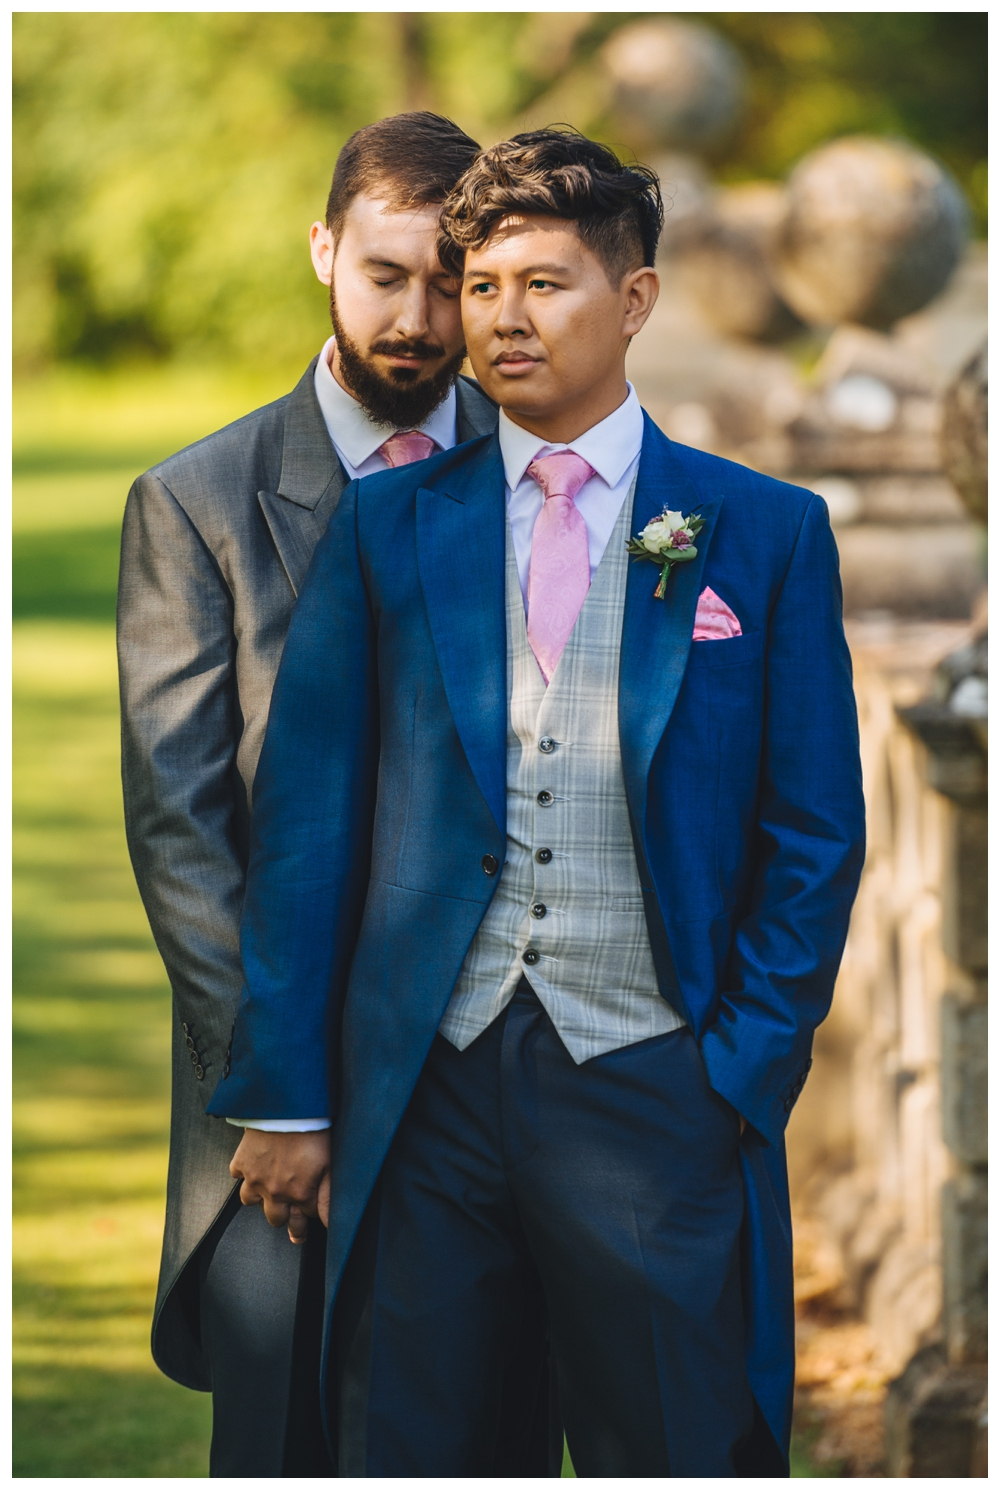 Same sex couple formal photo wedding day